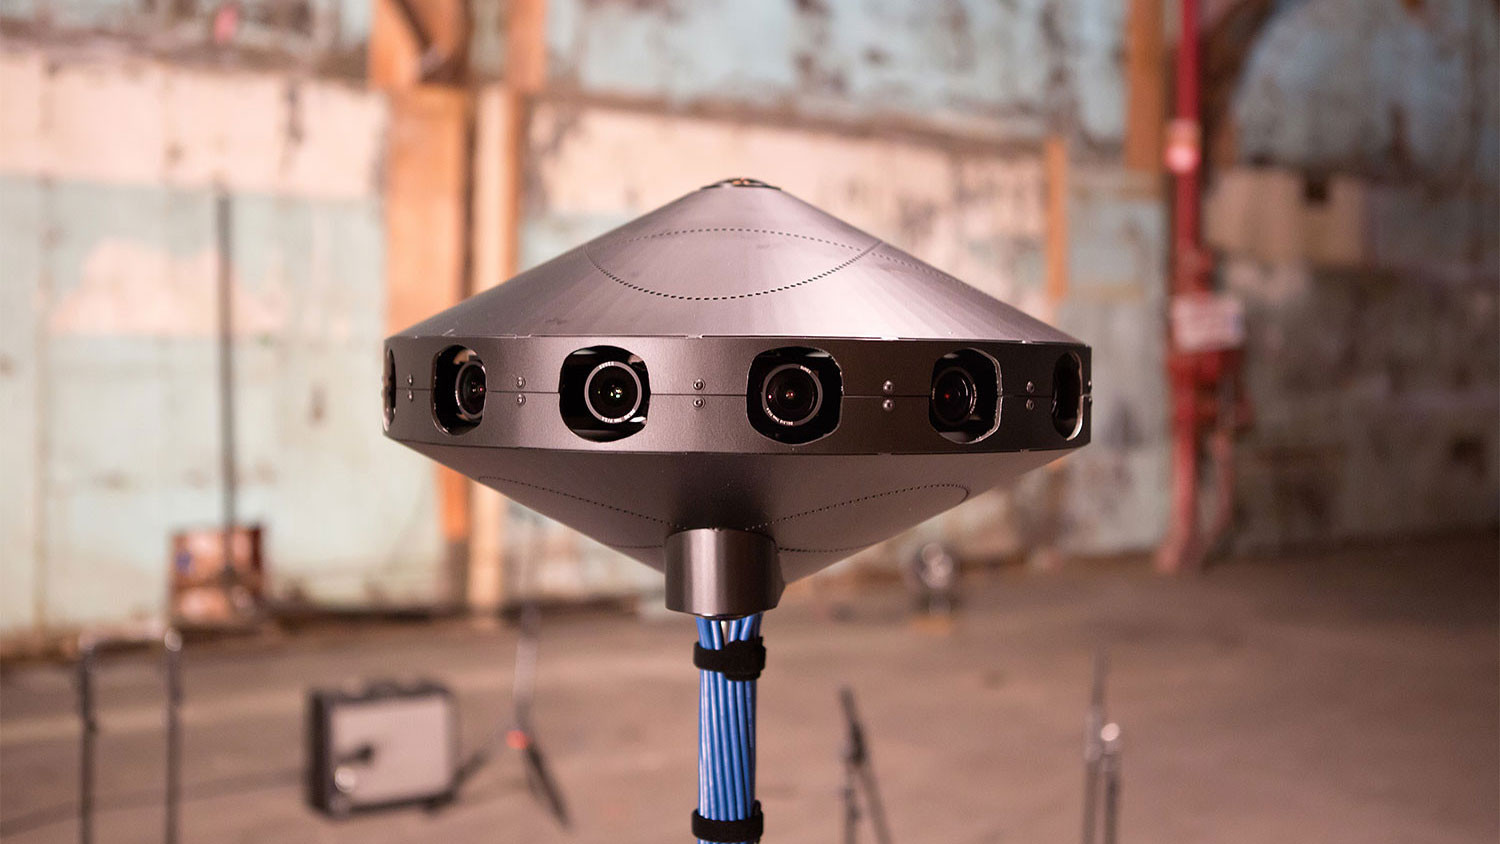 Facebook makes good on promise to open-source its 360-degree camera